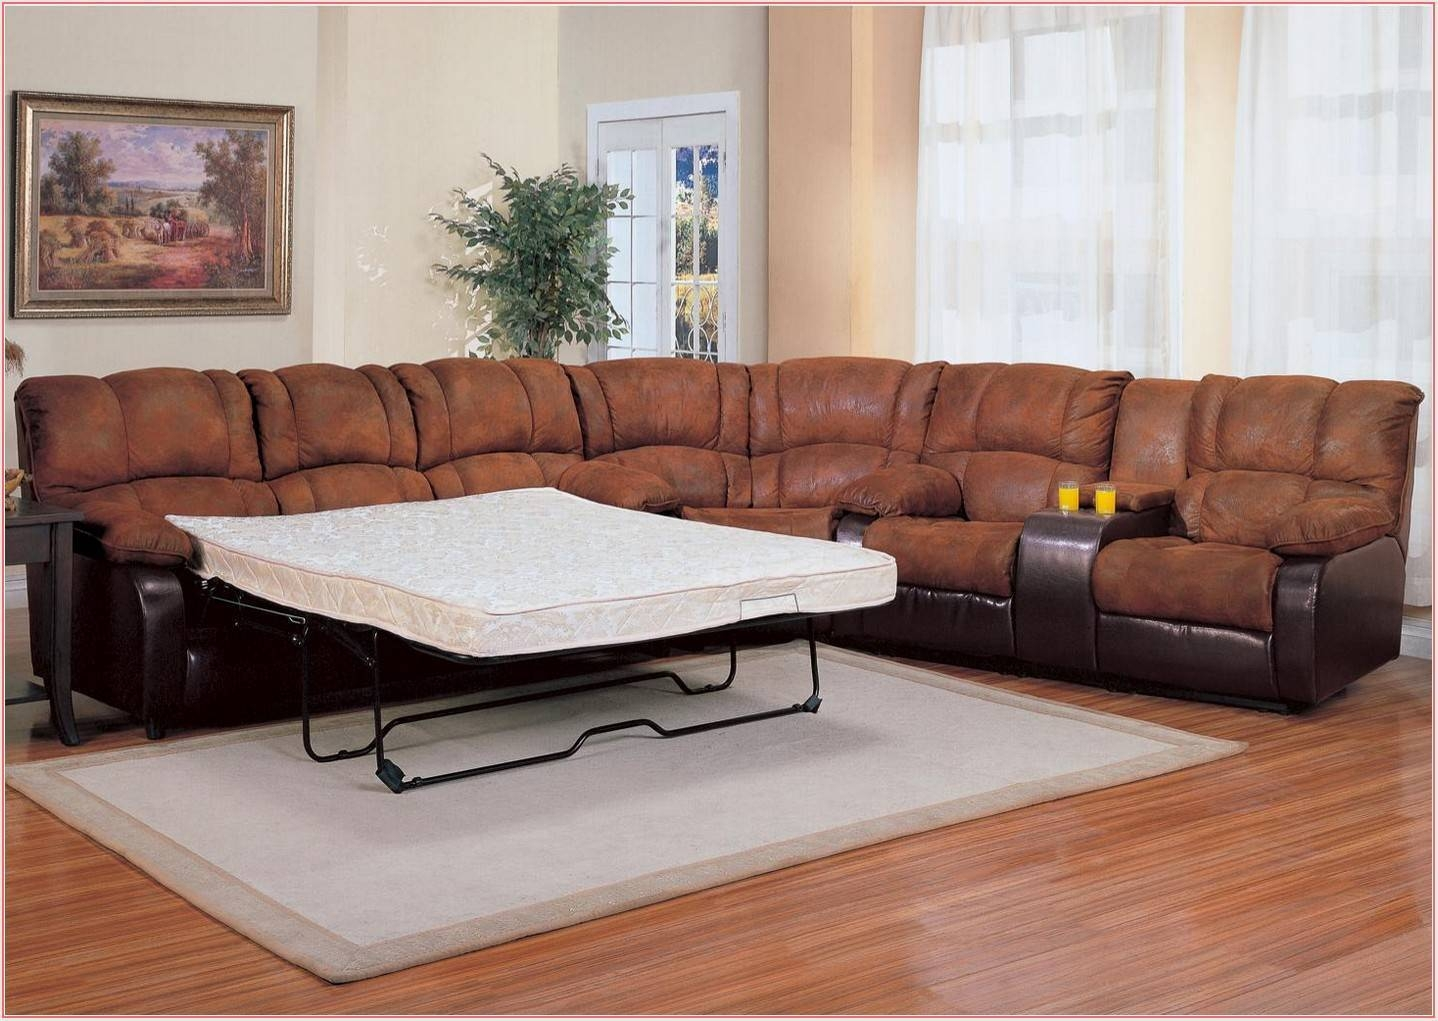 Astonishing C Shaped Sofa Sectional 43 For Your Black And Red Intended For C Shaped Sofa (View 2 of 30)